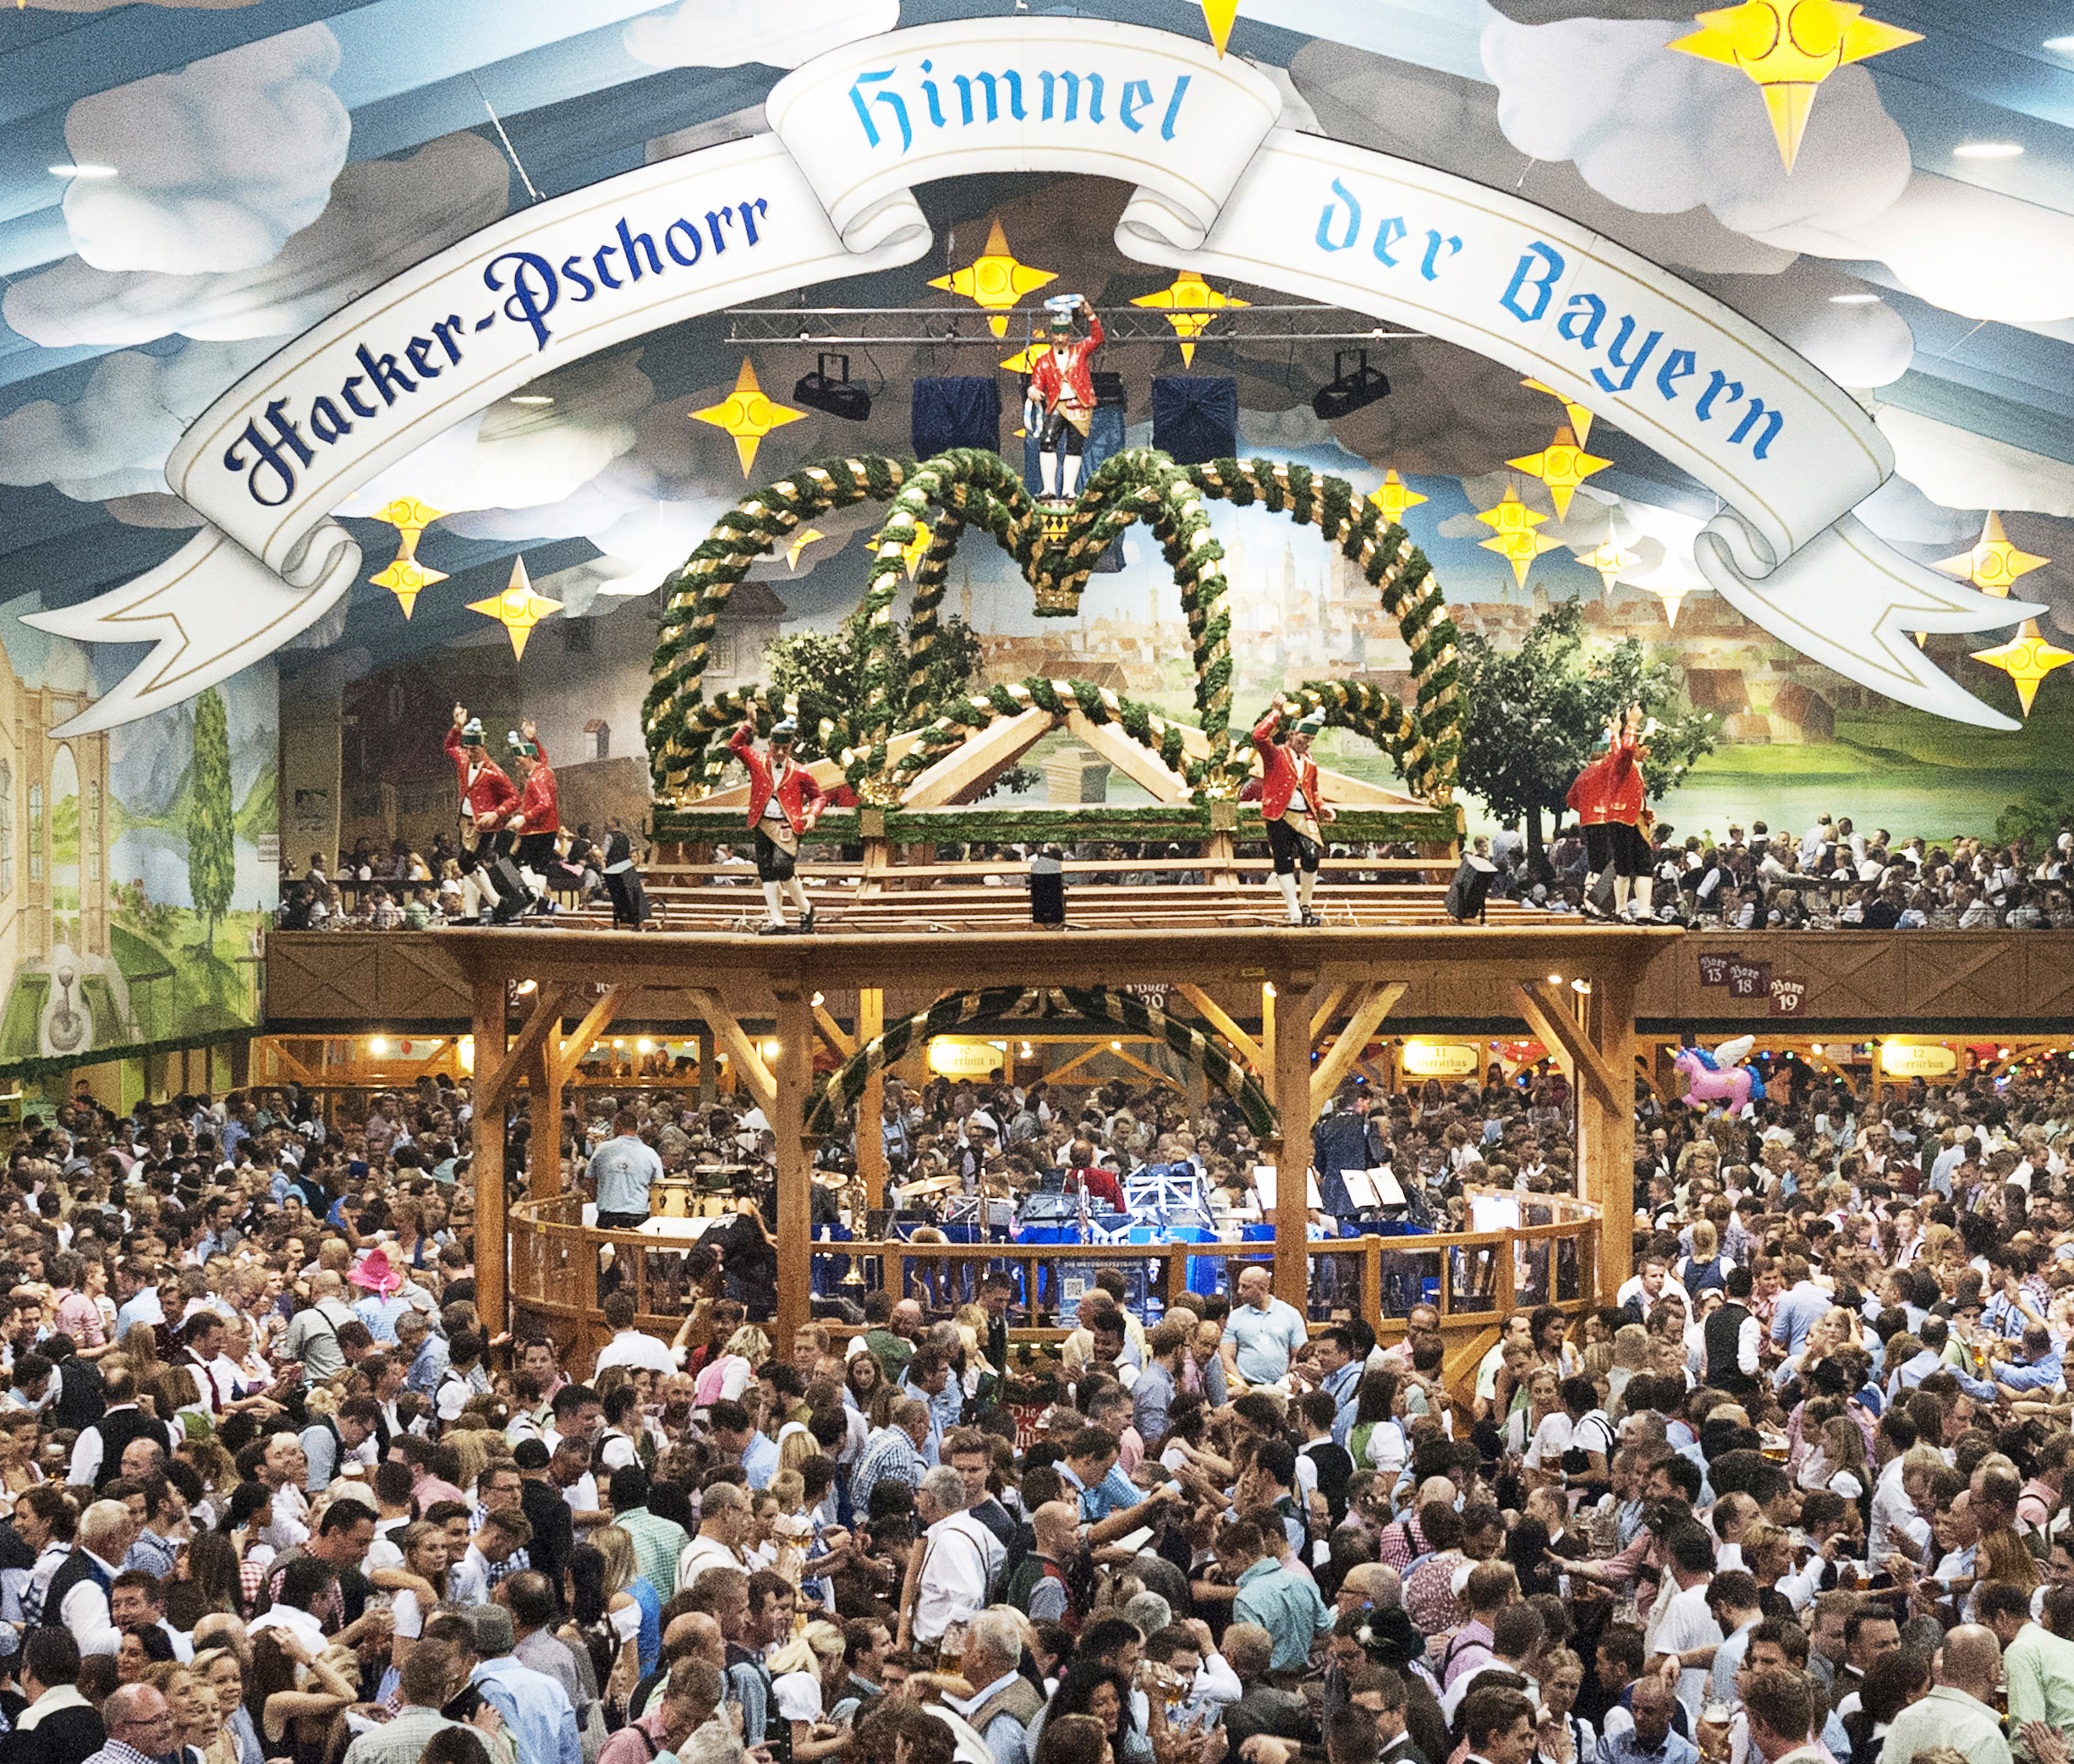 It is estimated that around 7 million visitors will attend Oktoberfest 2018 over the 16-18 day period, travelling to Germany from all over the world.